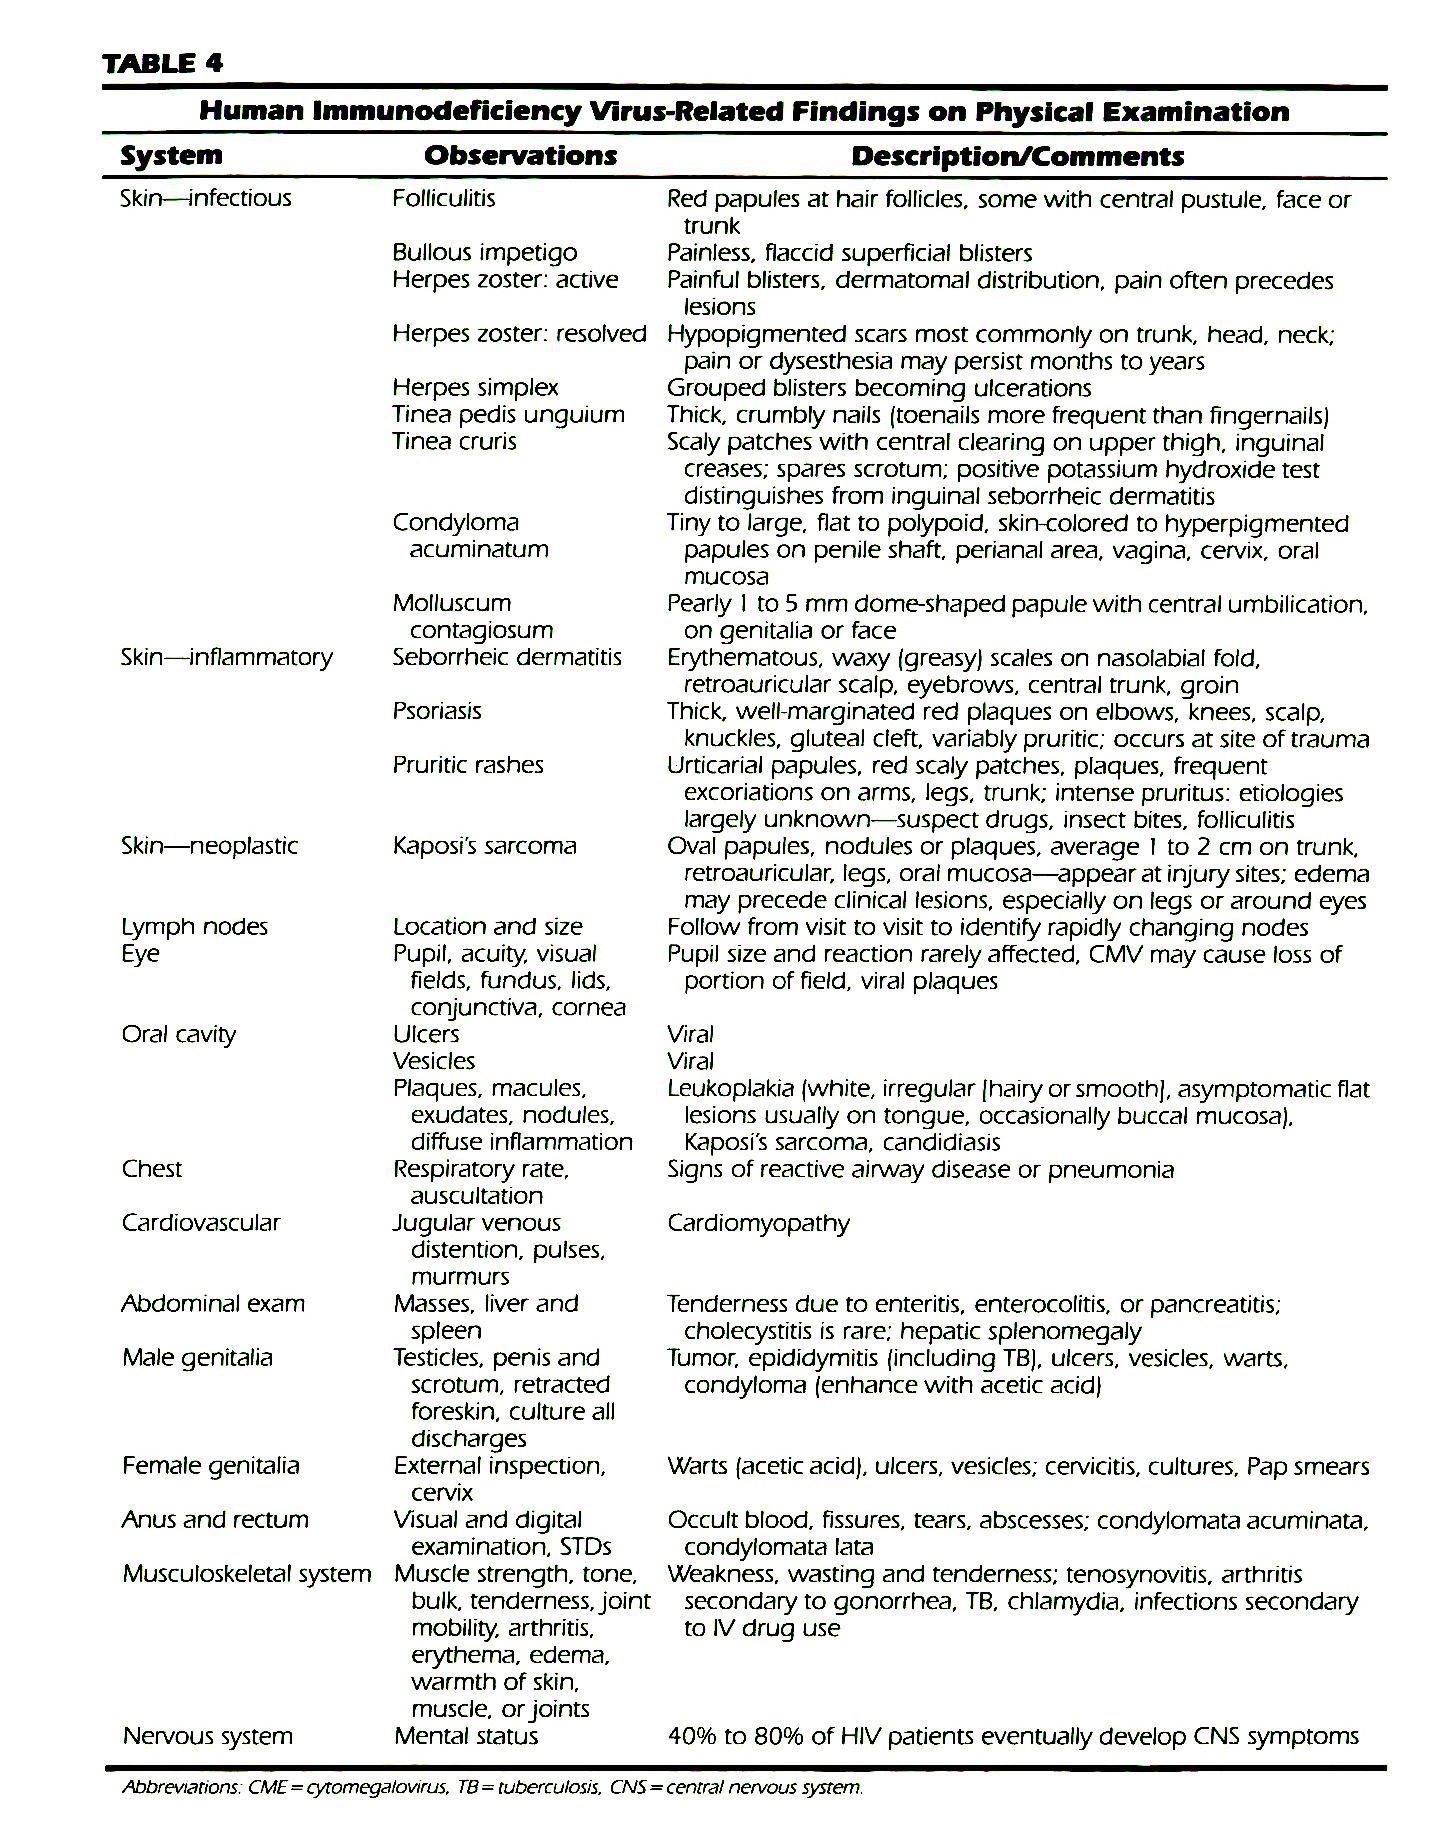 TABLE 4Human Immunodeficiency Virus-Related Findings on Physical Examination